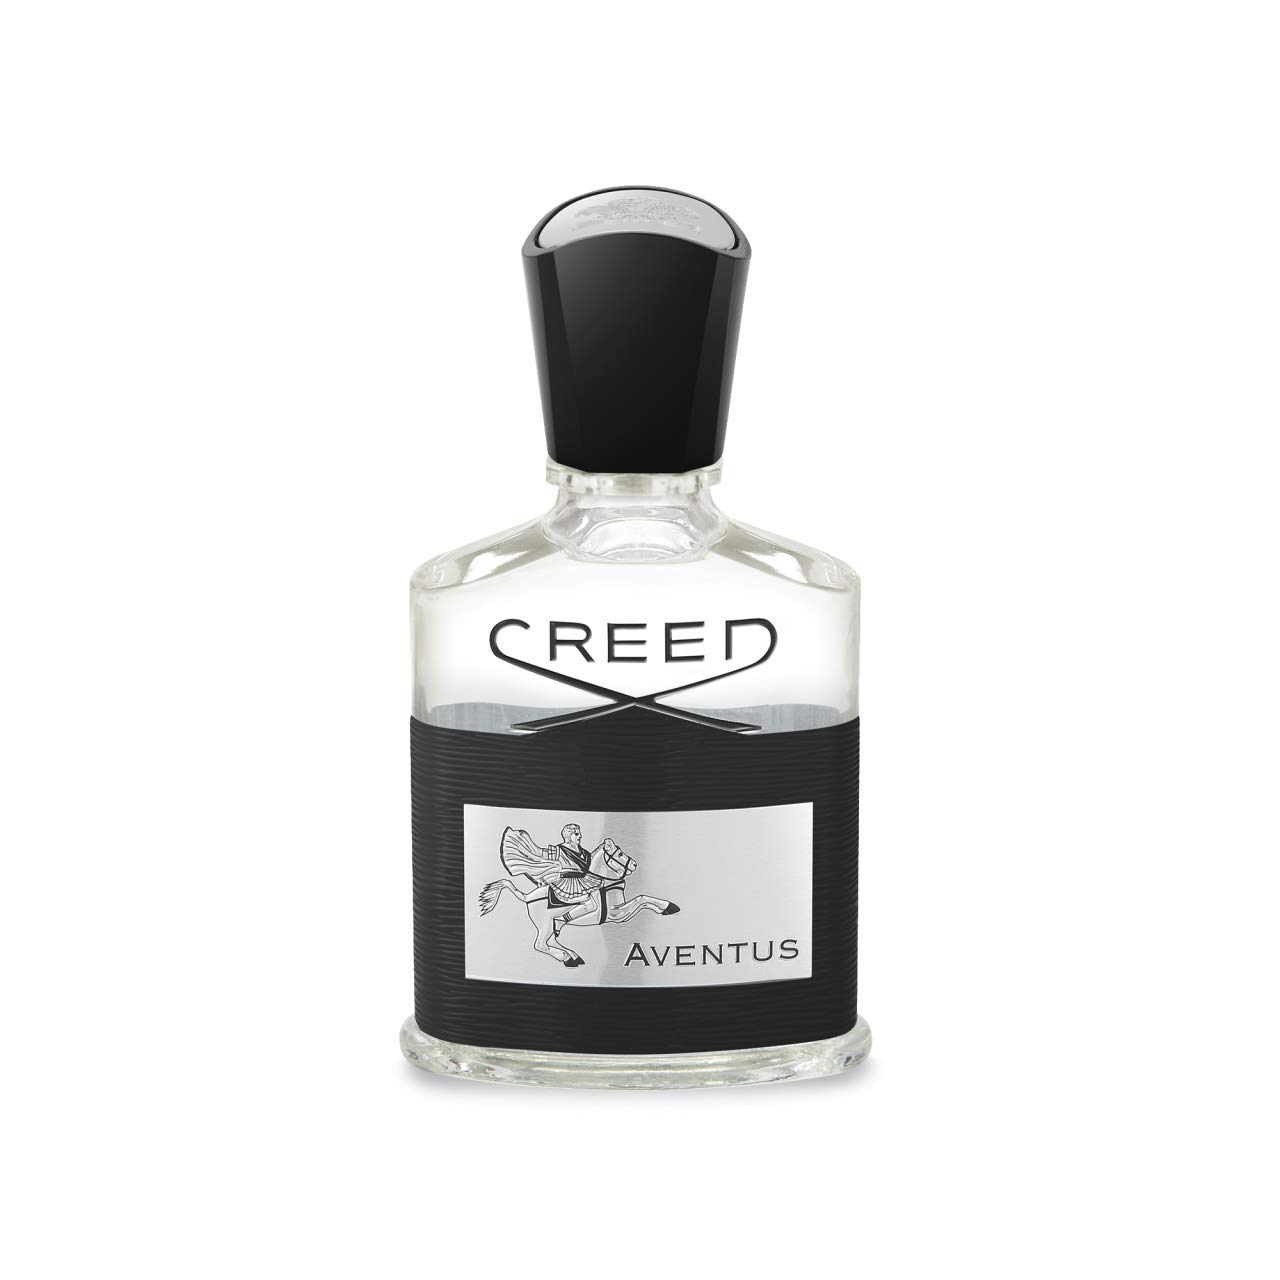 CREED Aventus, 1.7 fl. oz., White